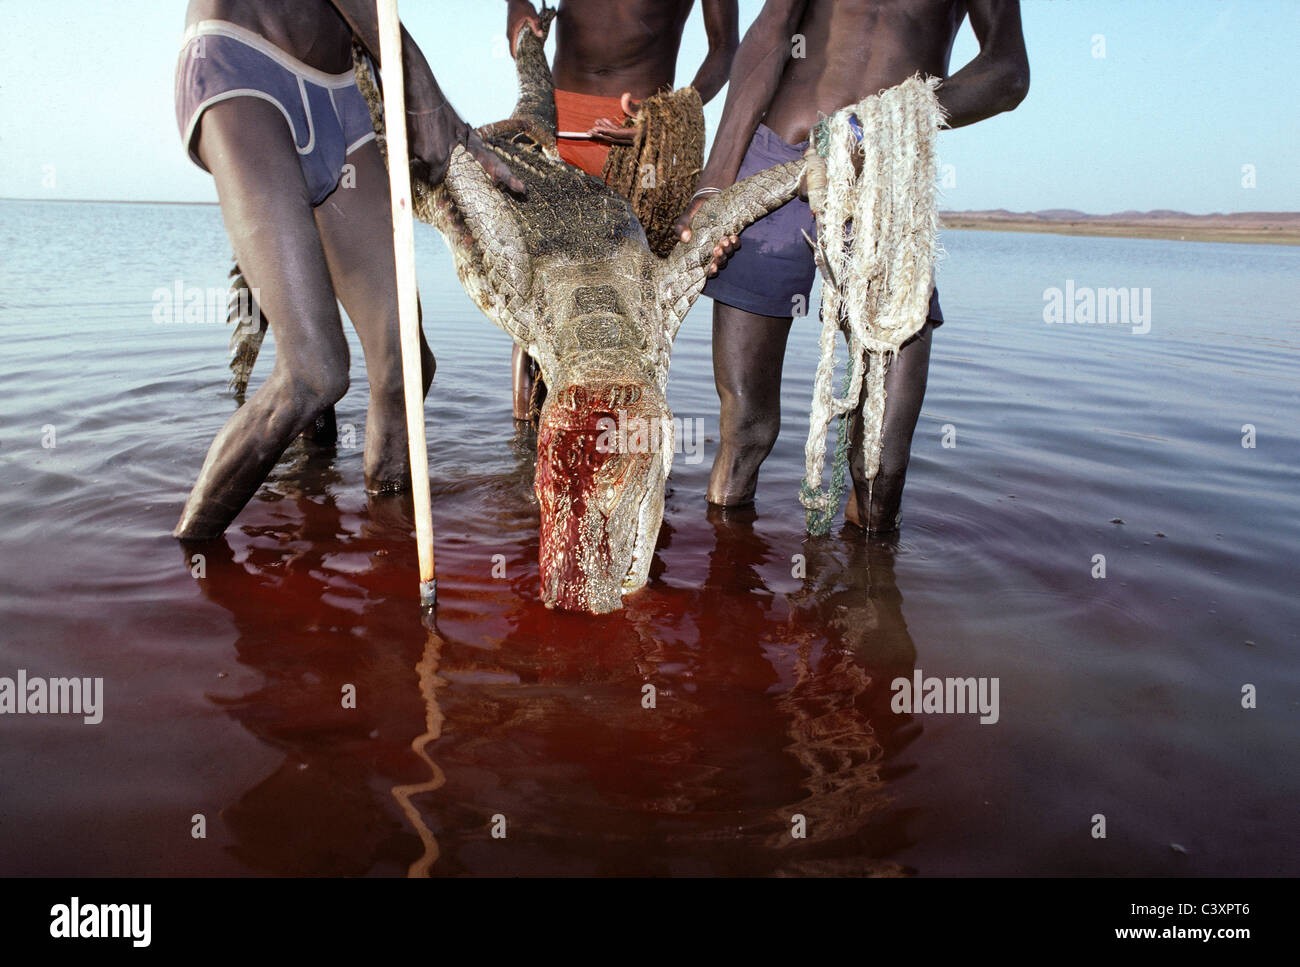 El Molo Warriors pulling a dead nile crocodile (Crocodylus niloticus) to shore after they speared it during a hunt. - Stock Image